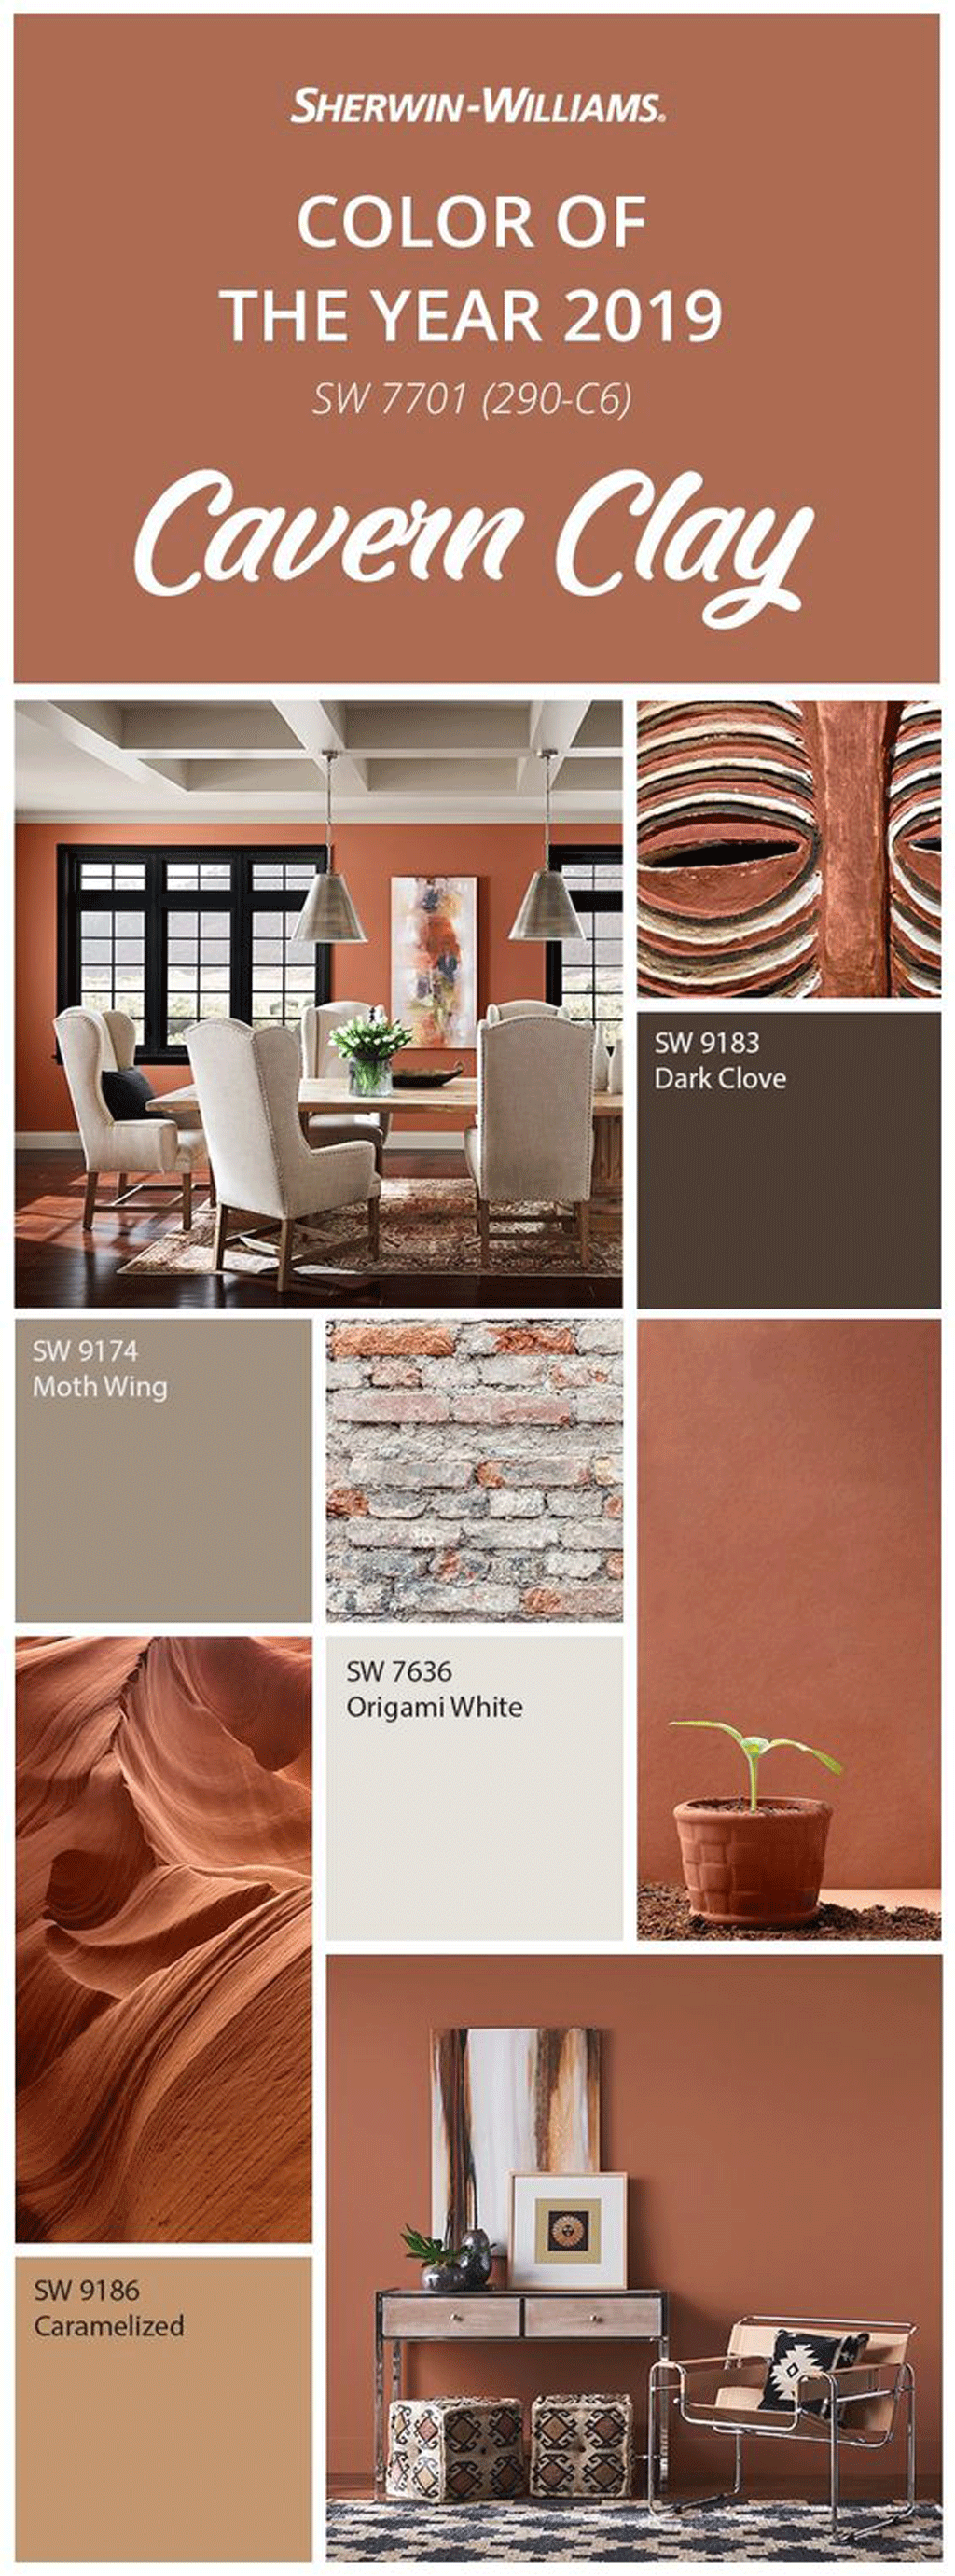 Sherwin williams color of the year 2019 cavern clay sw - What temperature can you paint outside ...